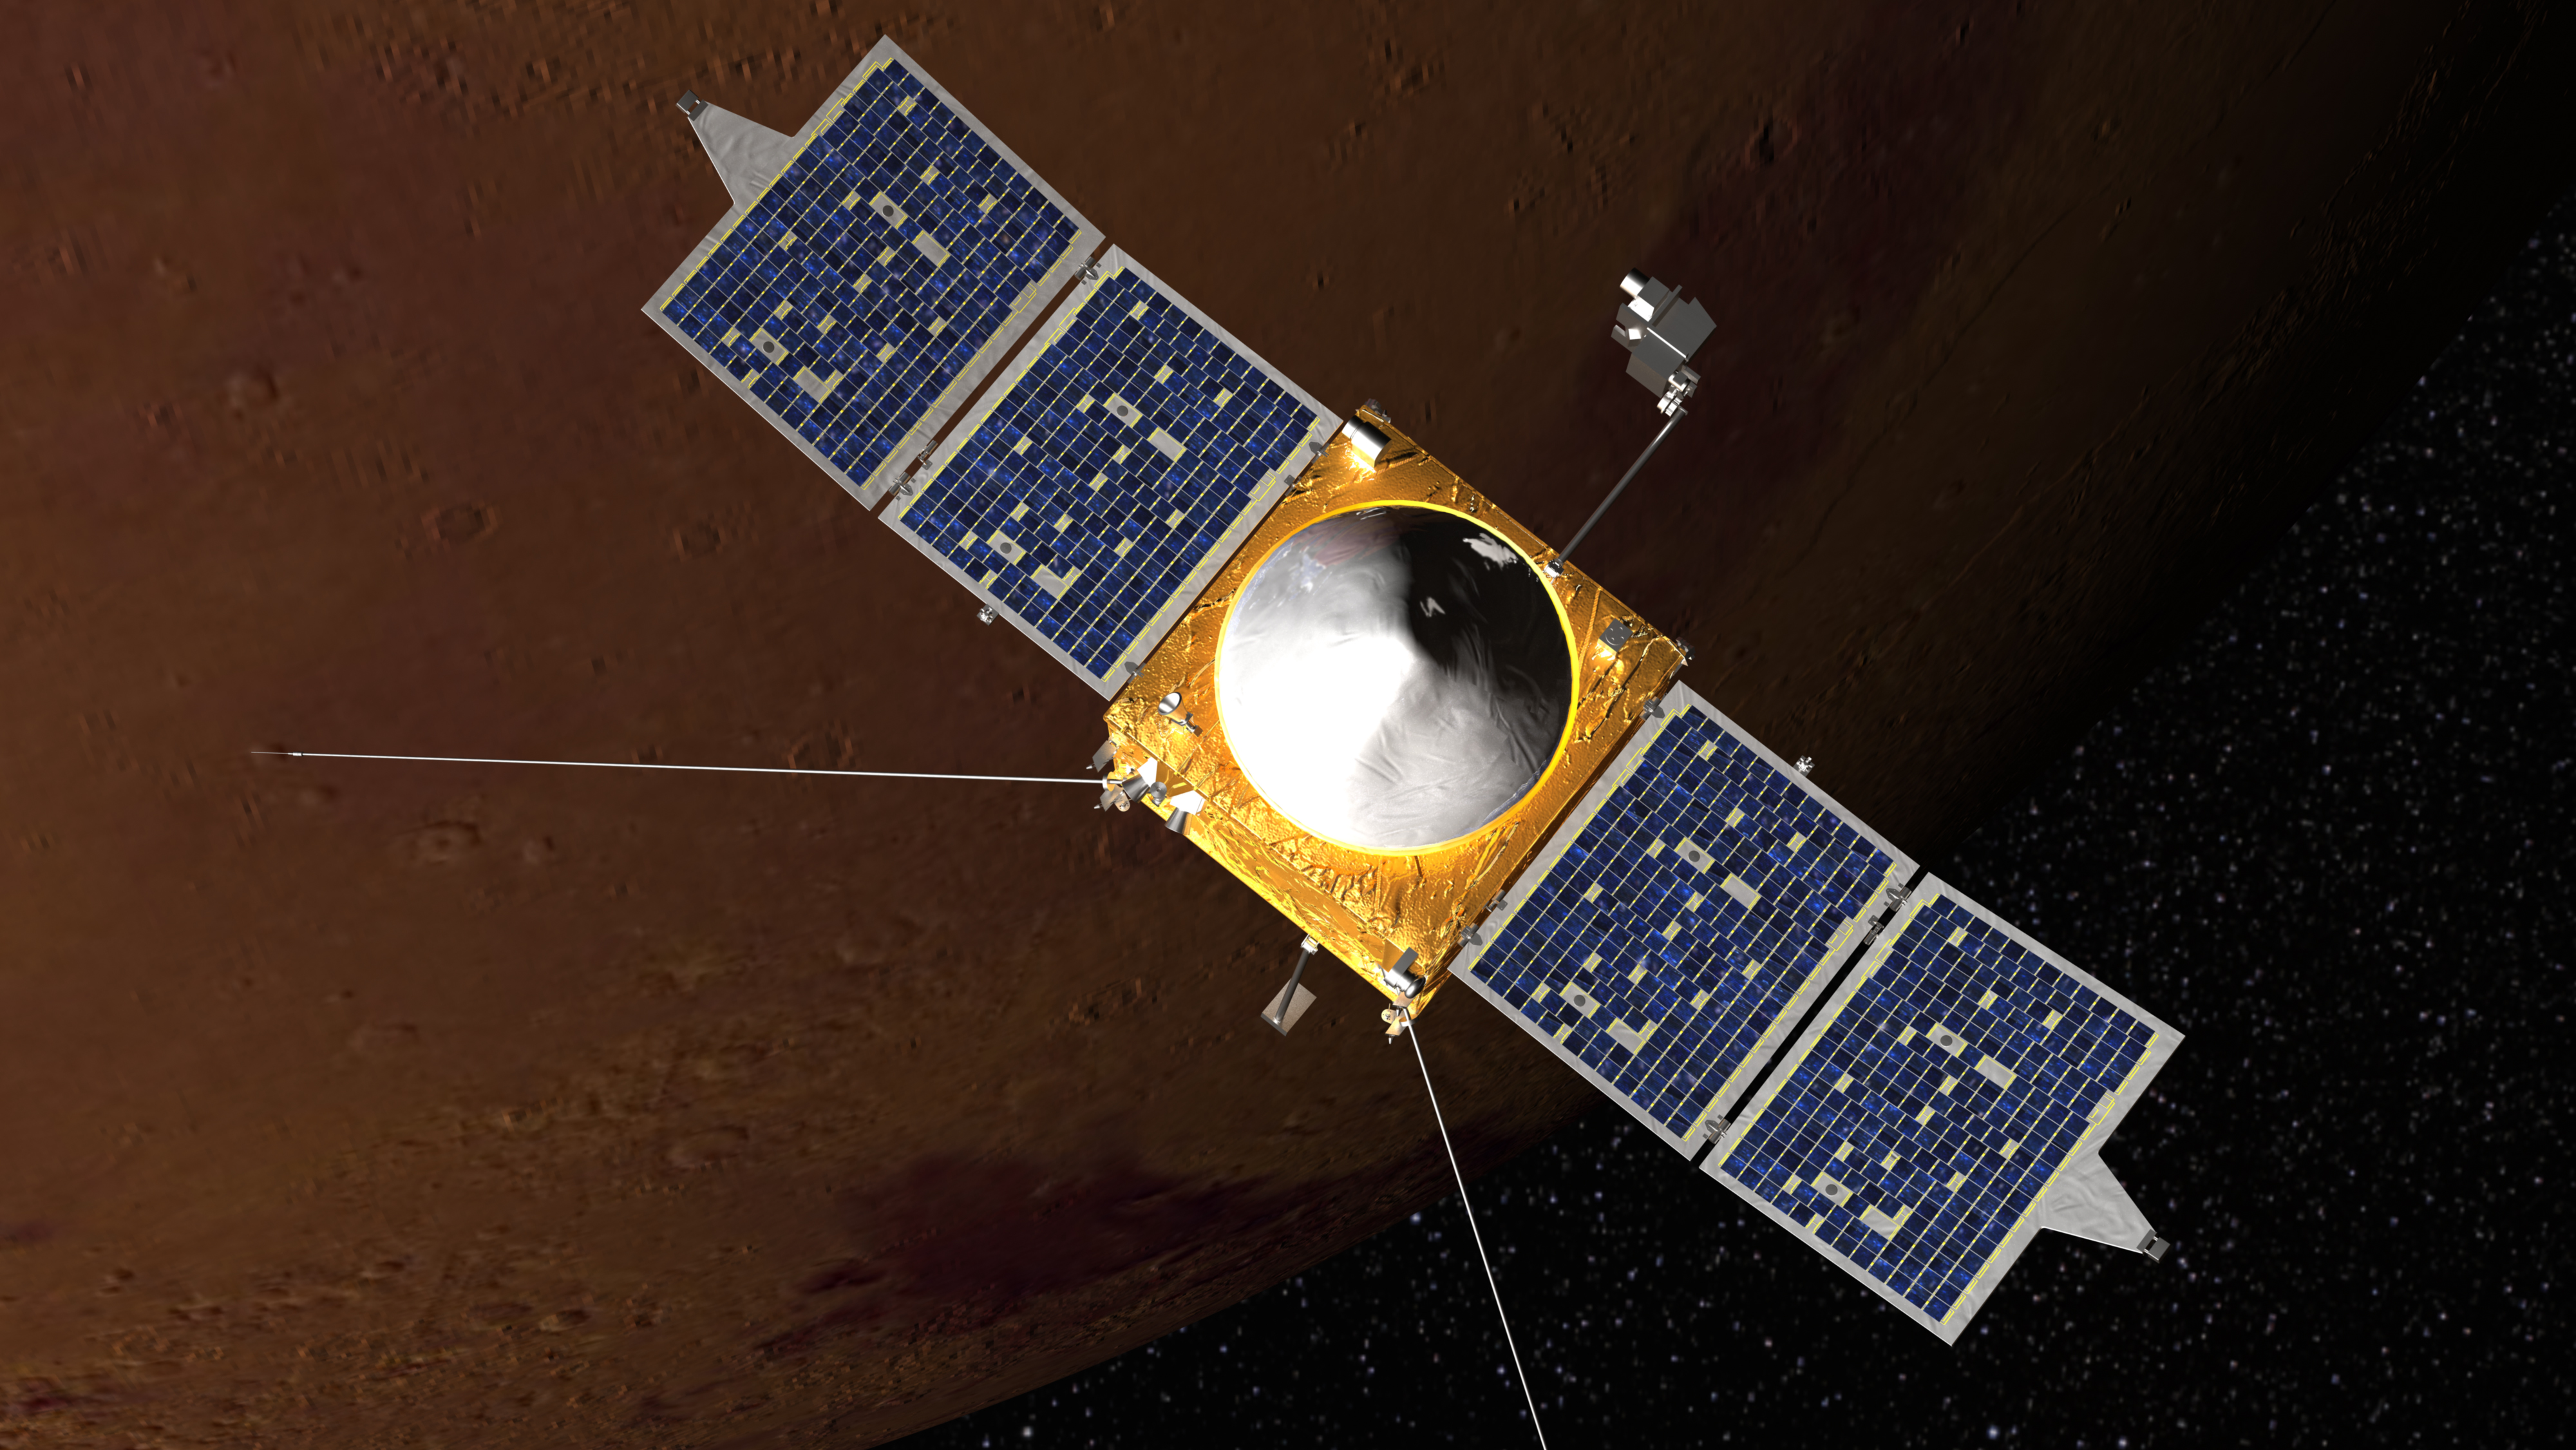 Mars Probes from US and India Arrive at Red Planet This Month